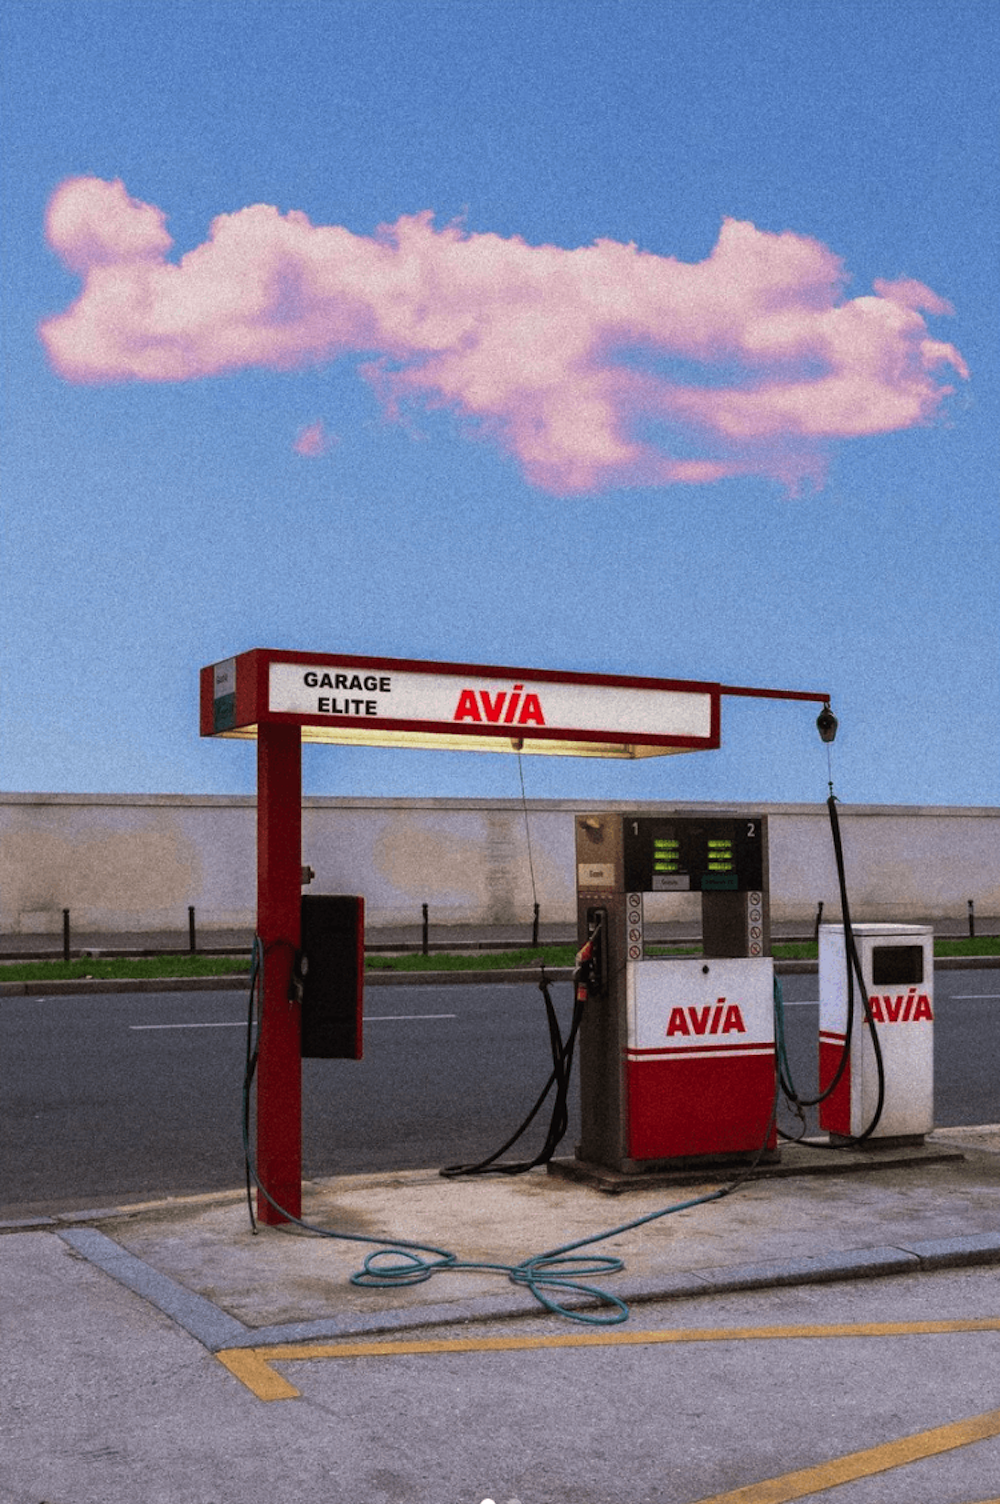 A petrol station in the middle of an empty road.